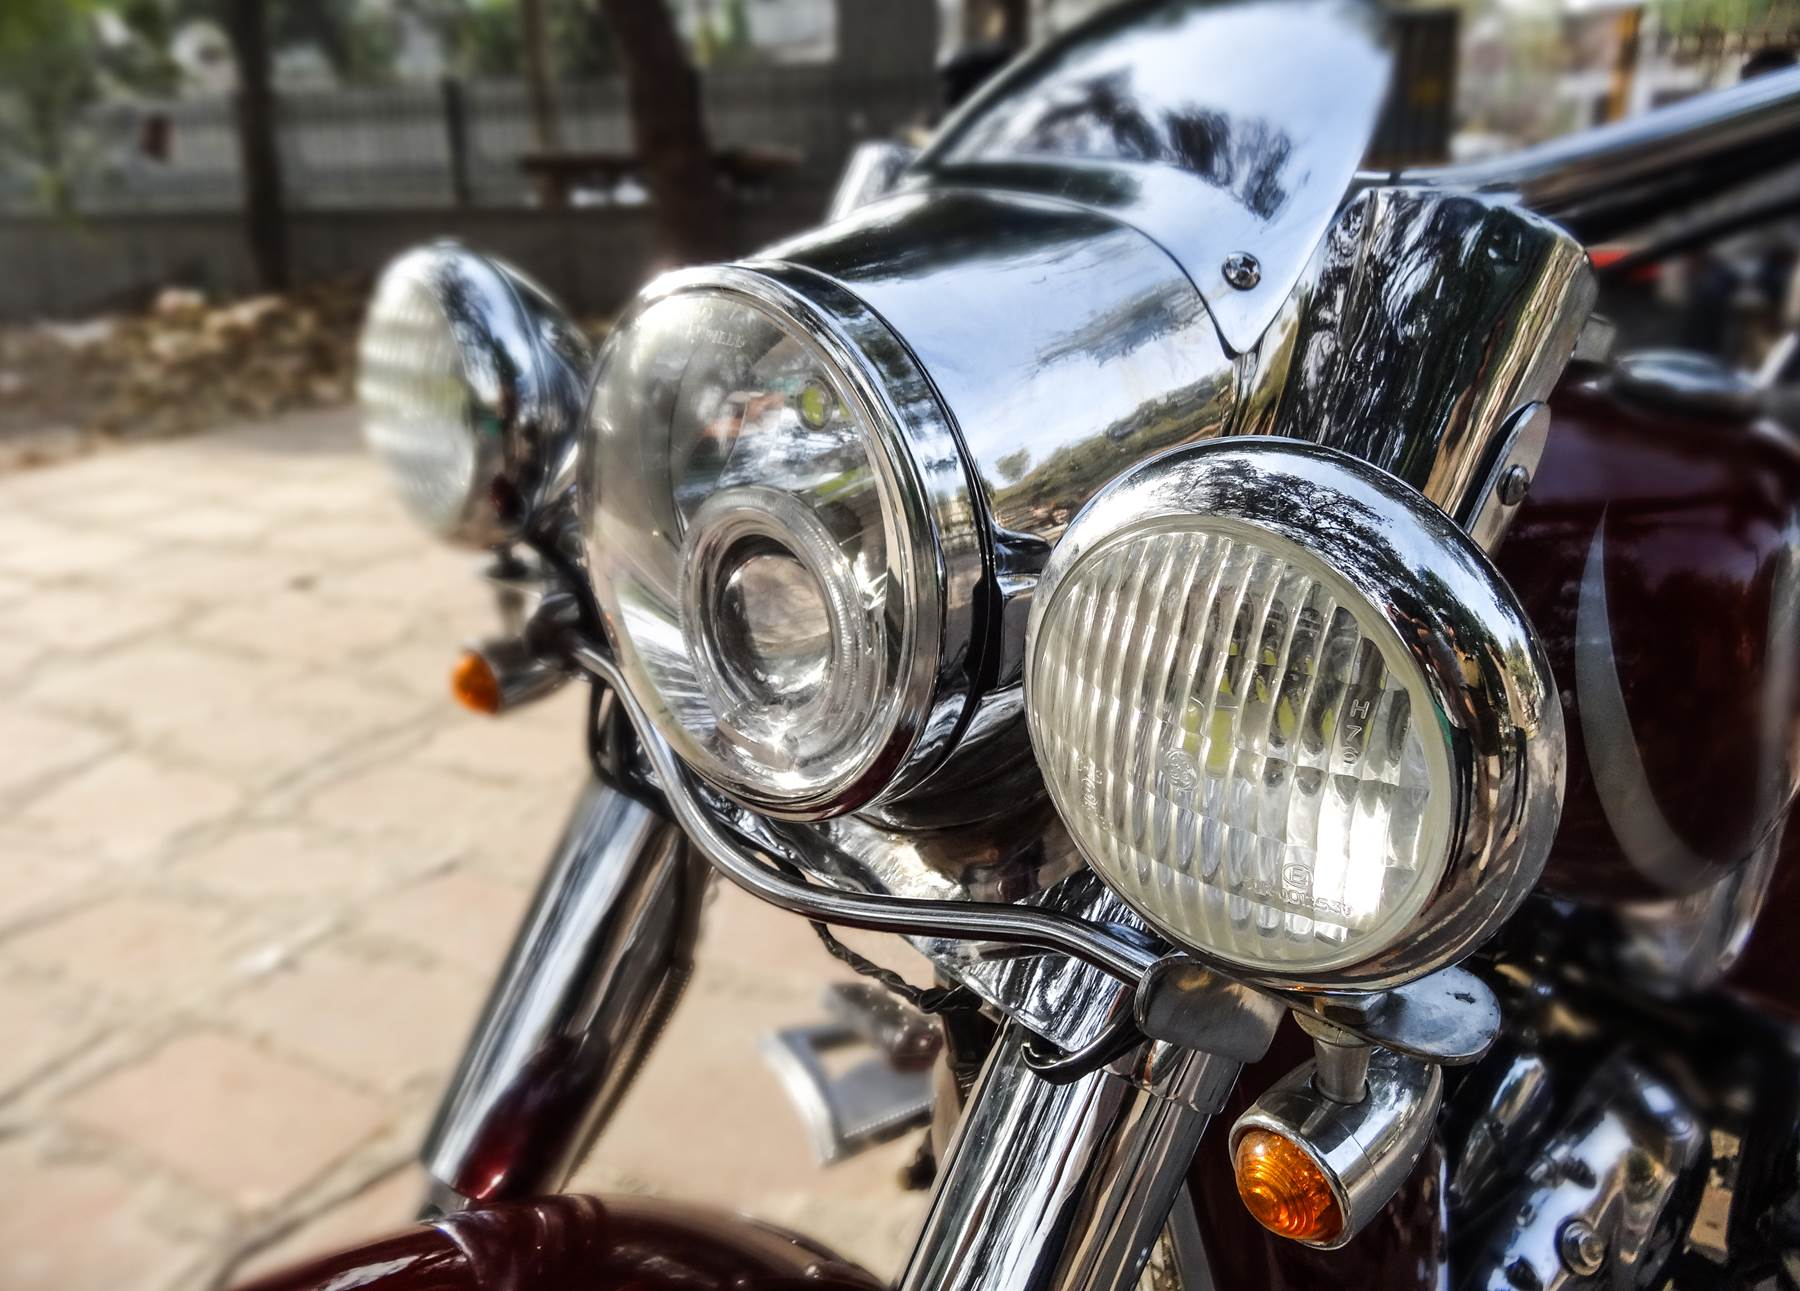 Chopped-Royal-Enfield-Classic-by-Neev-Motorcycles-CC-com-wallpaper-wp4805251